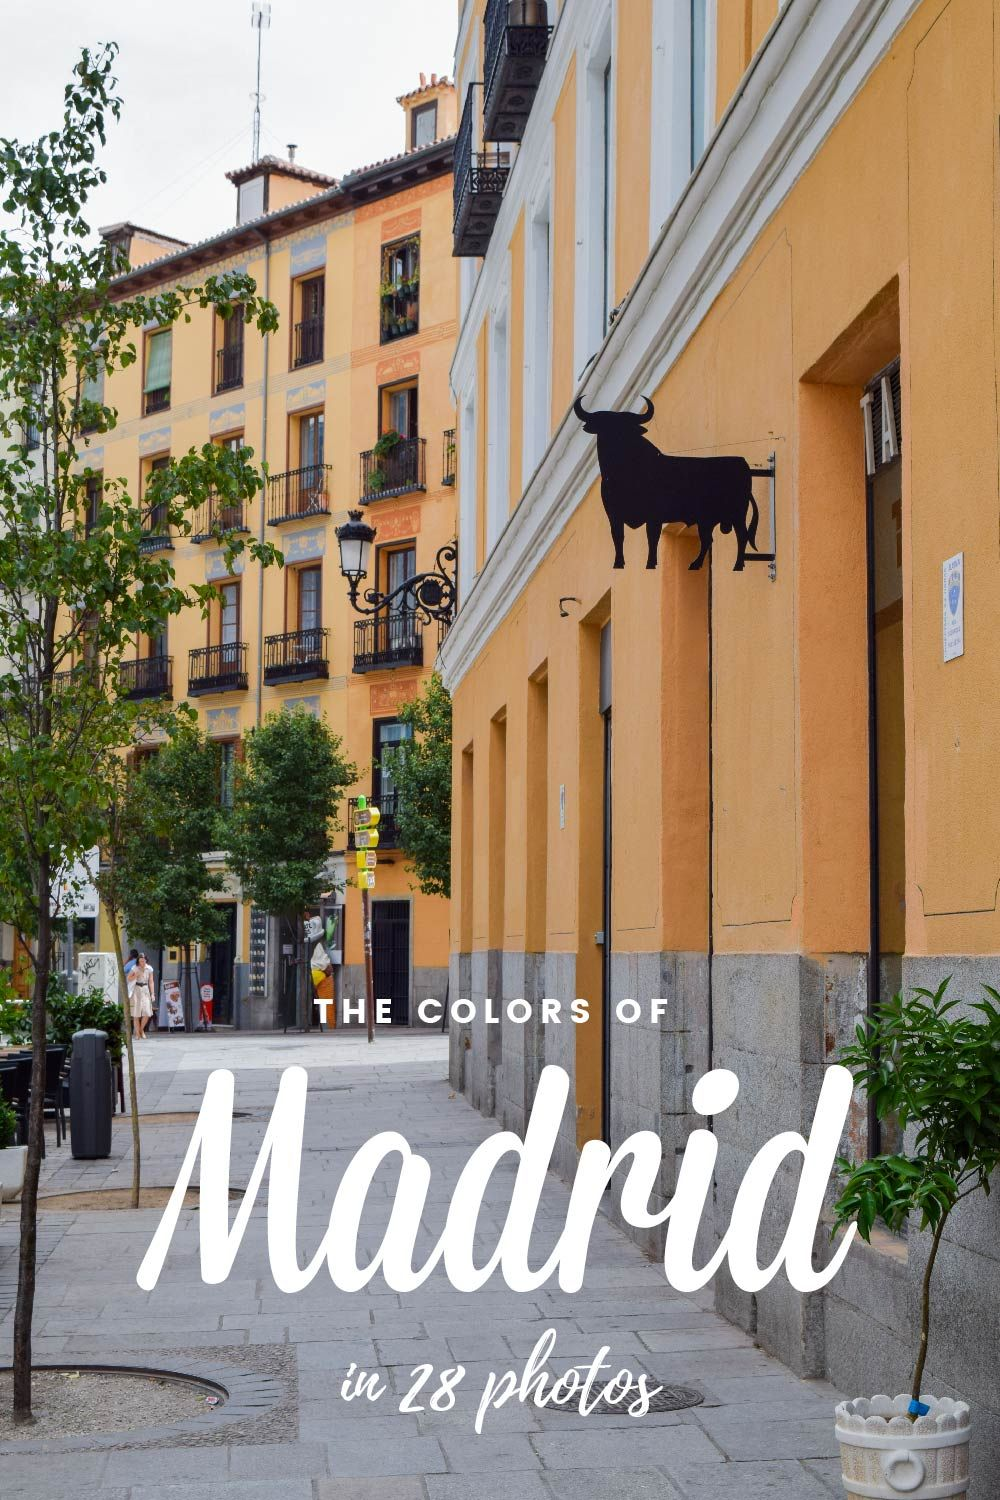 Walking the streets of Madrid...